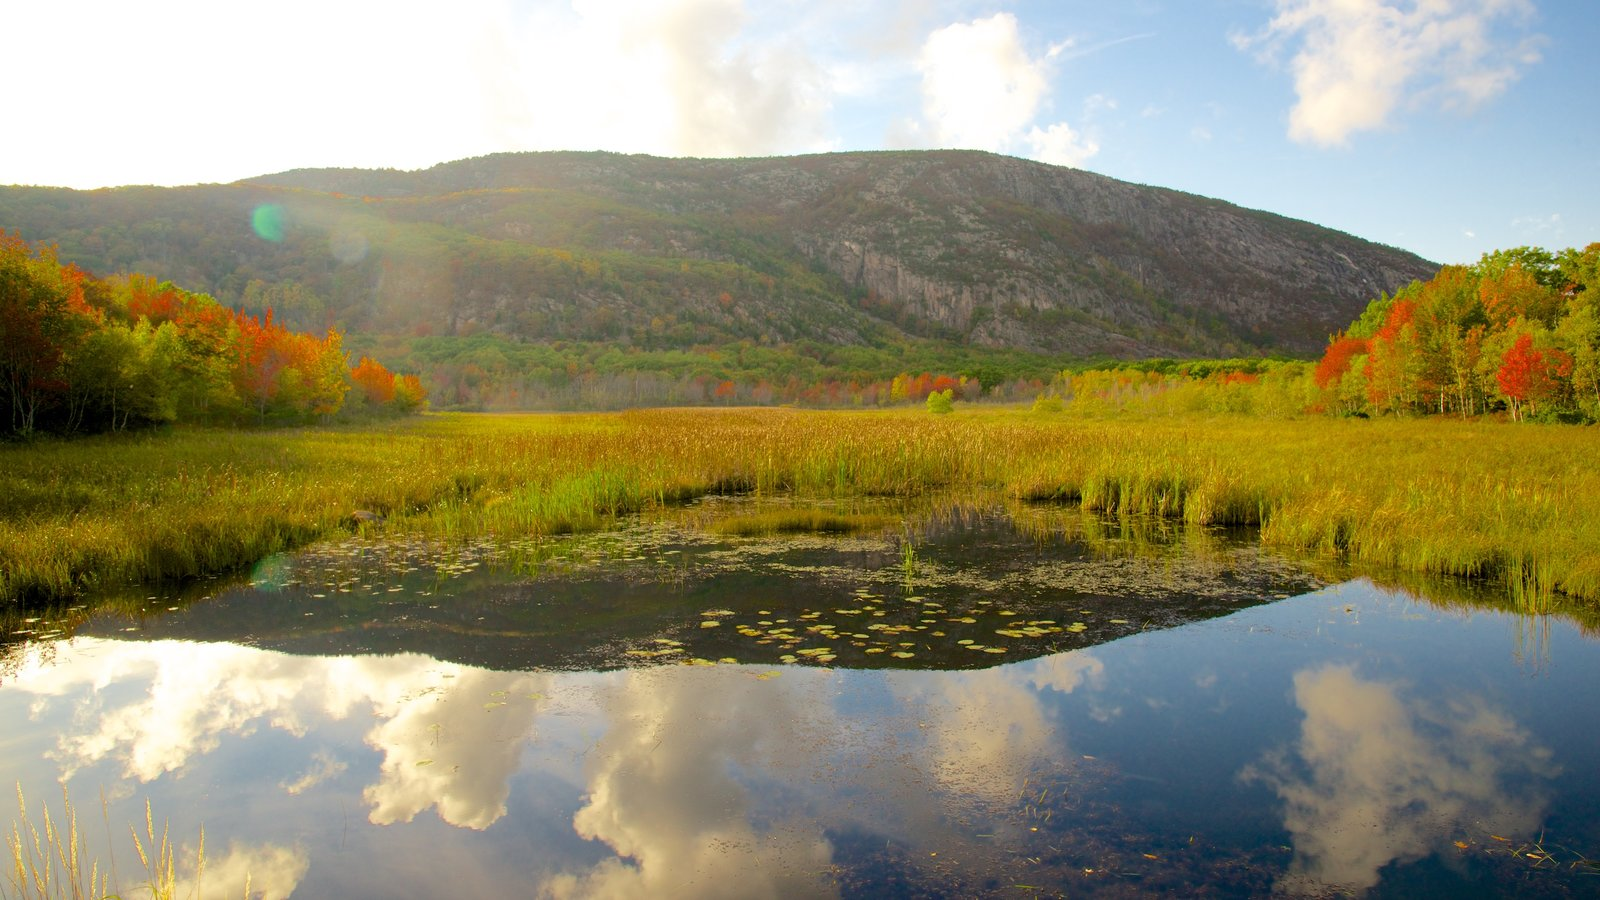 Acadia - North Coast featuring tranquil scenes and a pond